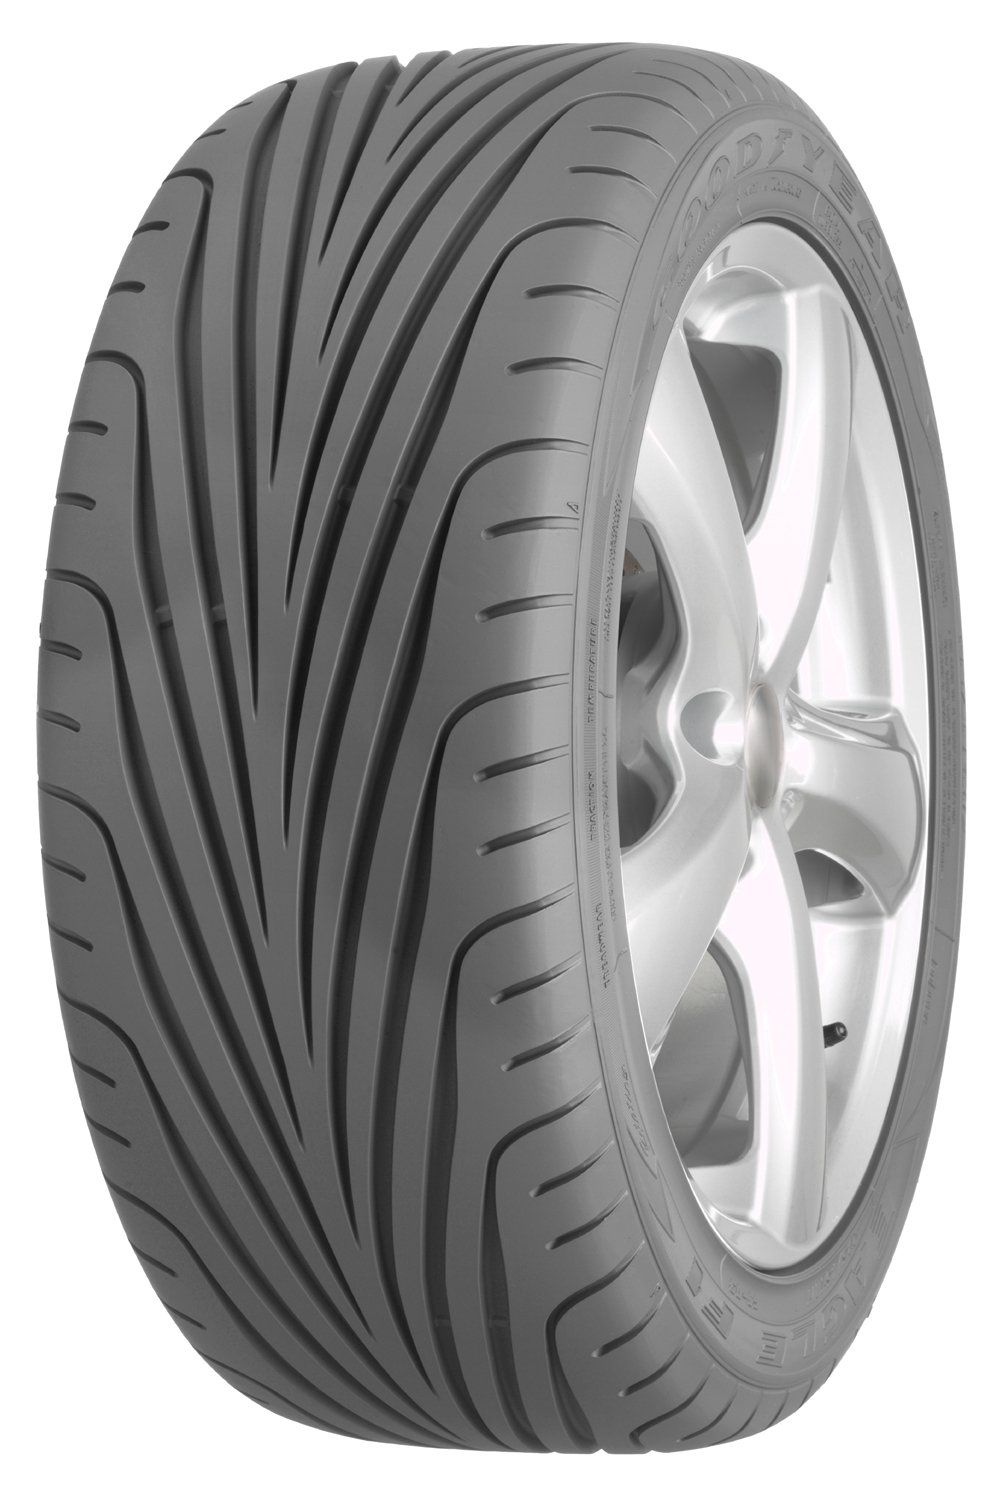 Anvelopa vara GOODYEAR Eagle F1 Gs-d3 235/50 R18 97V